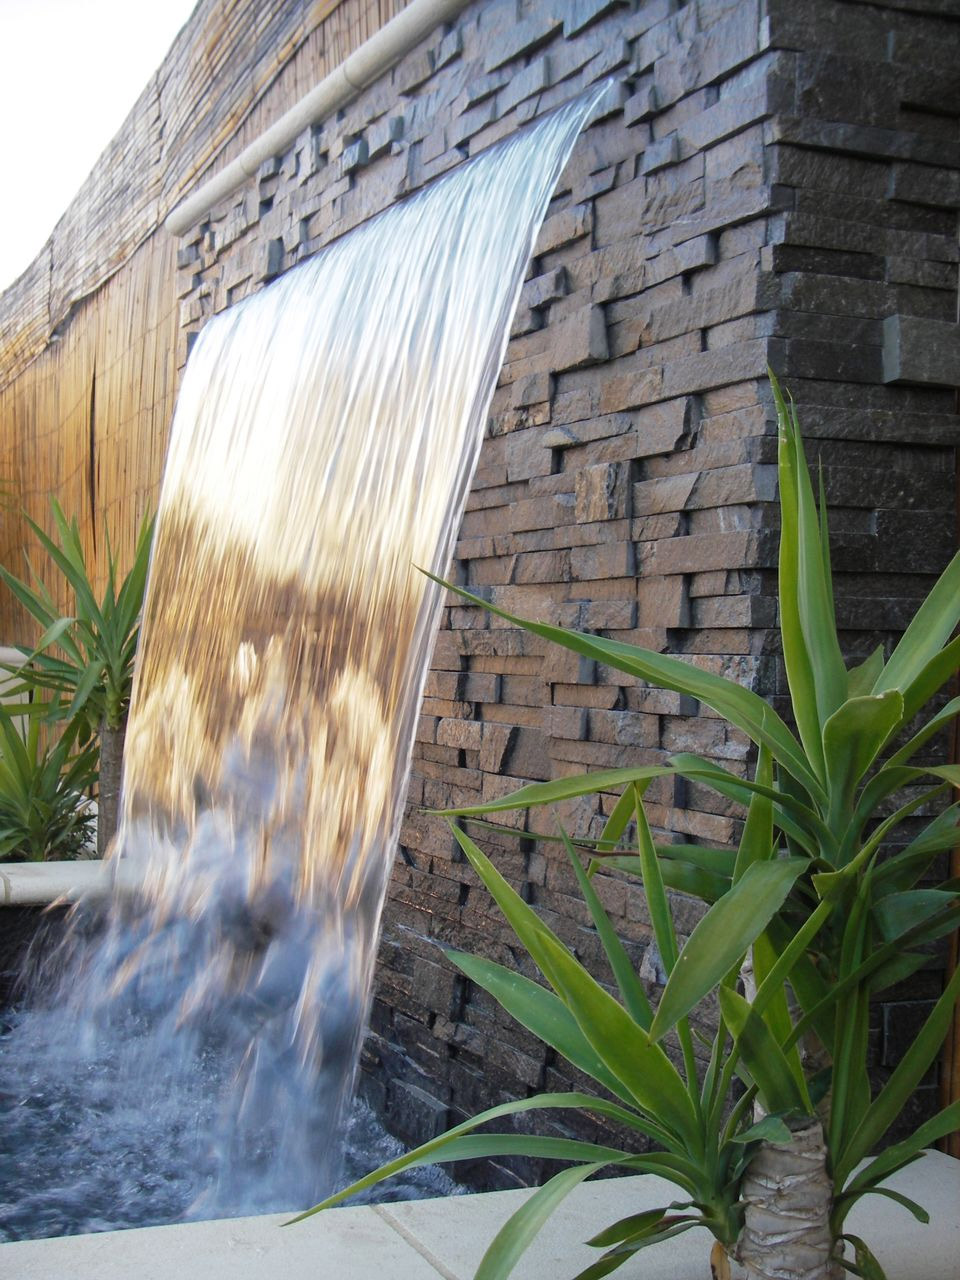 Waterfall features that splash into a reservoiror swimming pool can be built in almost any backyard or landscape.